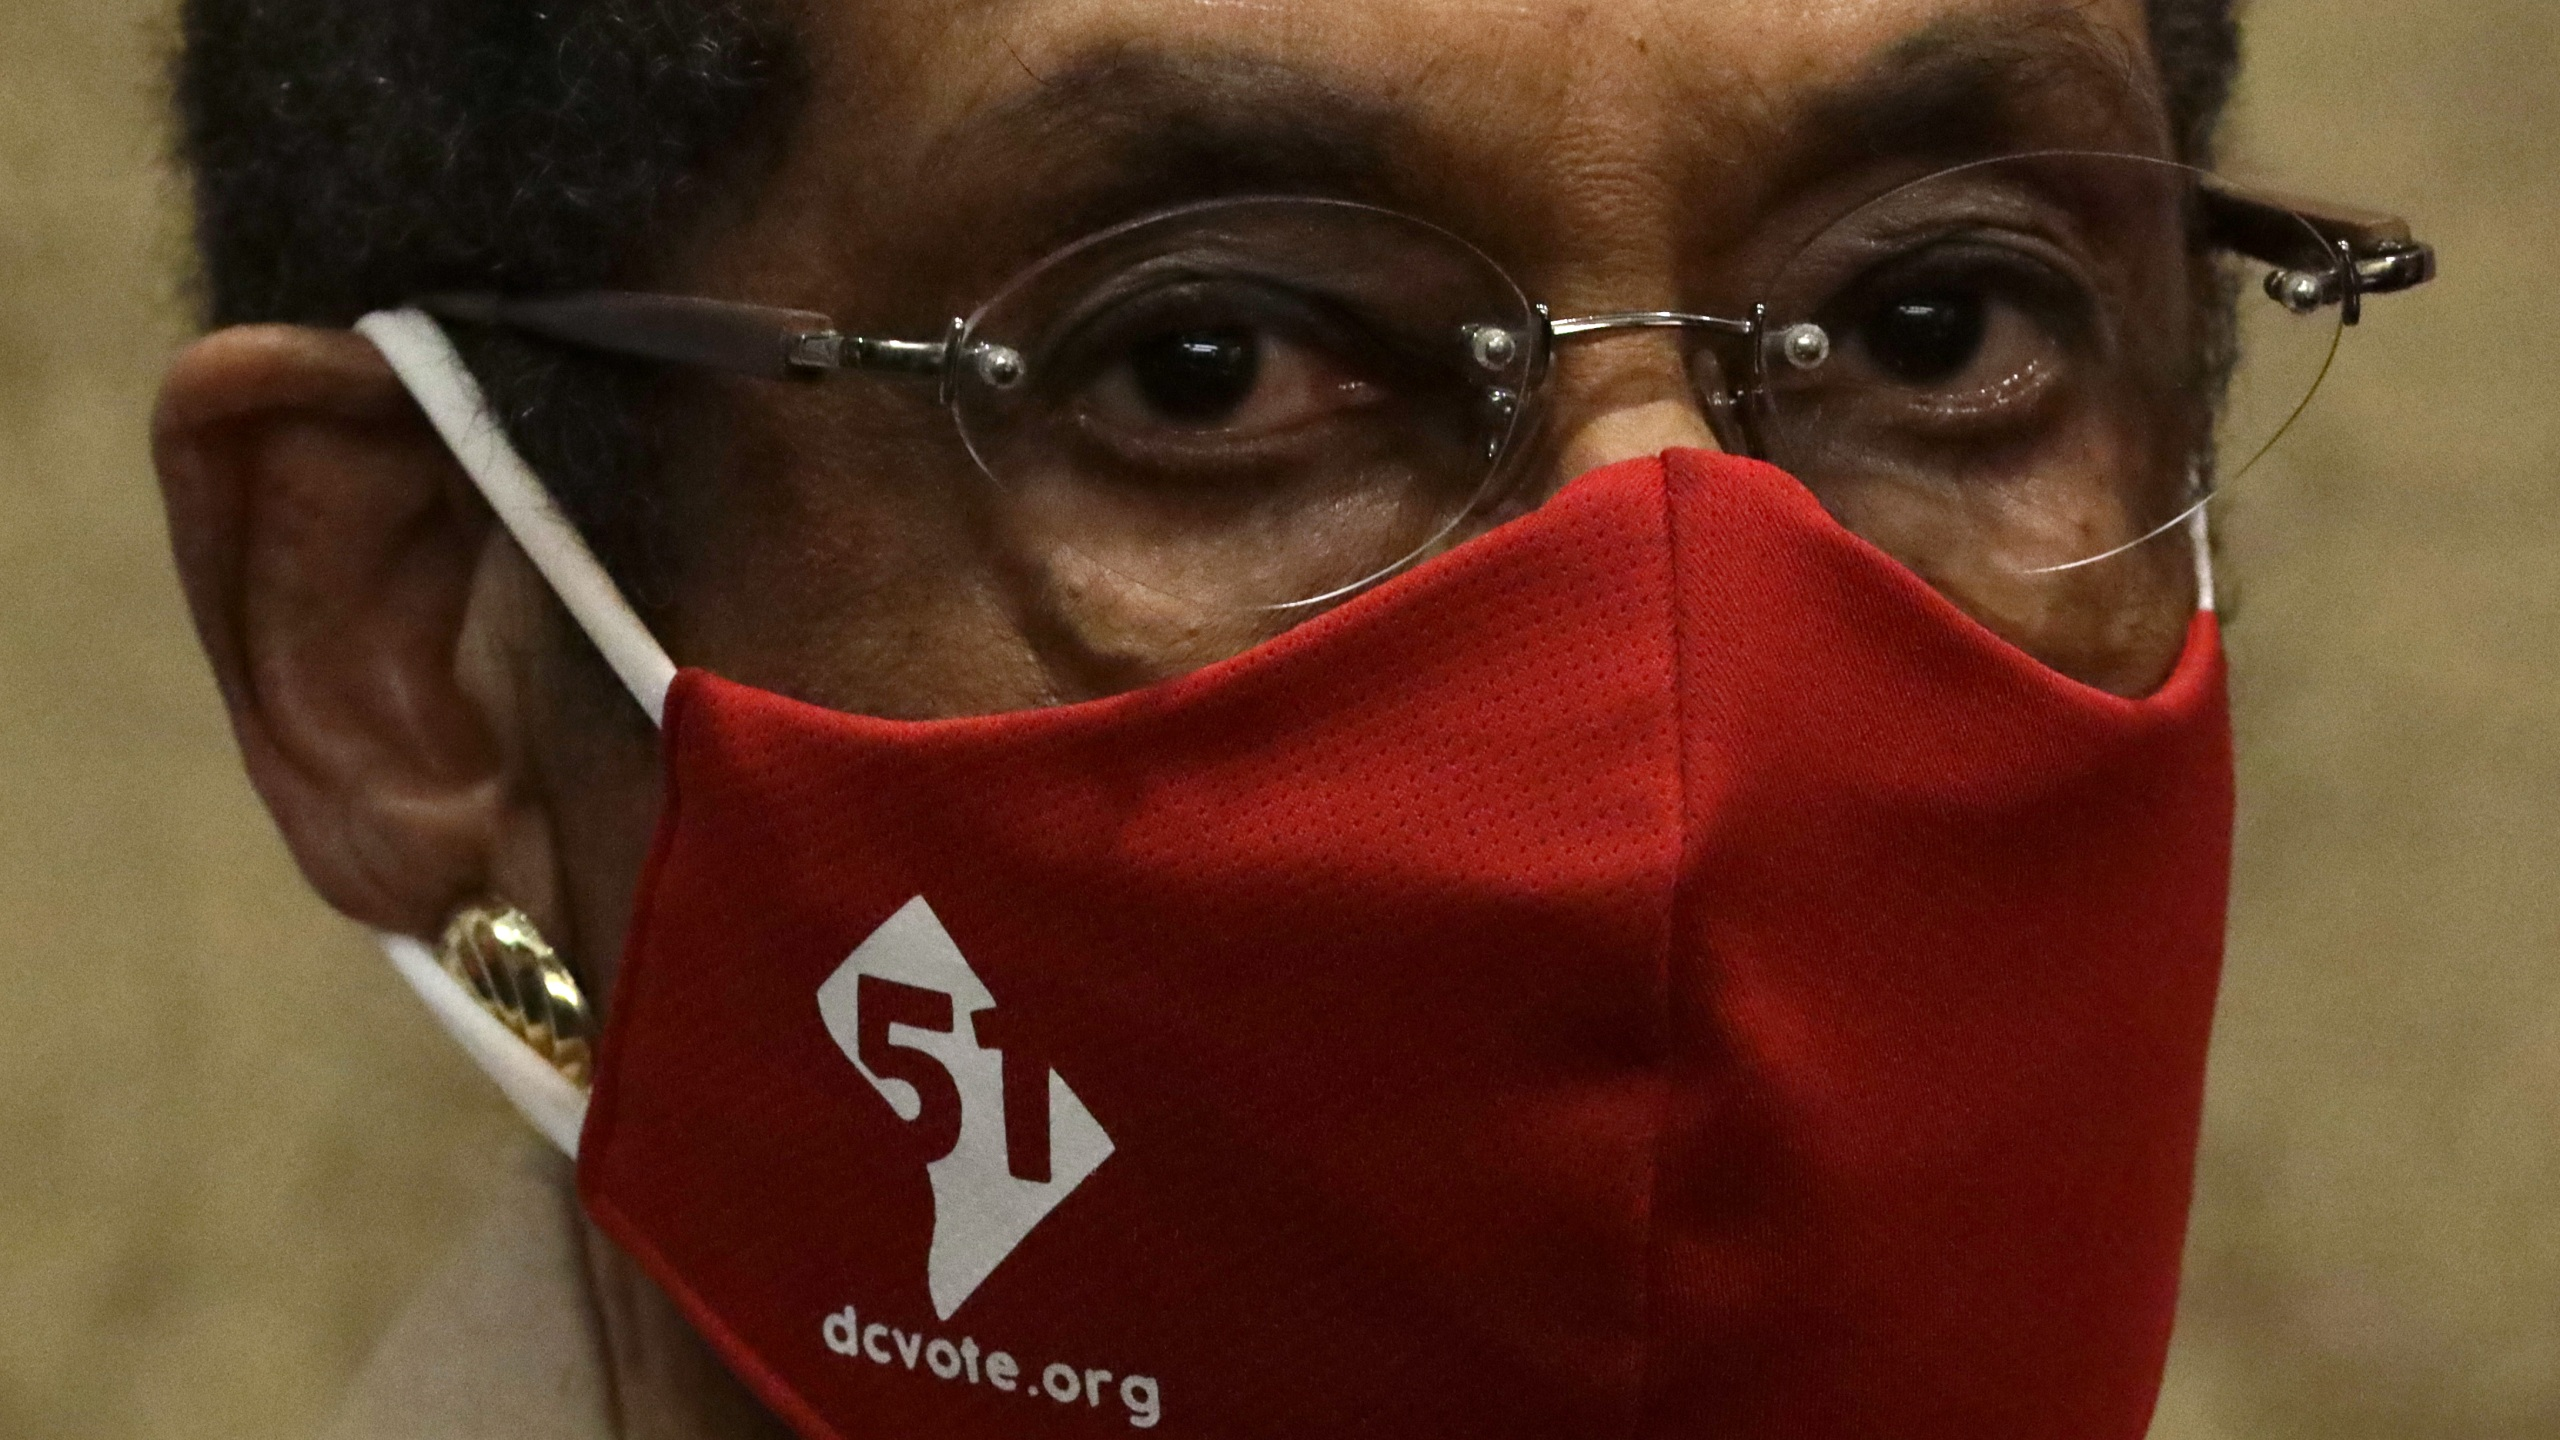 U.S. Rep. Eleanor Holmes Norton (D-DC) wears a DC Vote mask during a news conference on District of Columbia statehood June 25, 2020, on Capitol Hill. (Alex Wong/Getty Images)